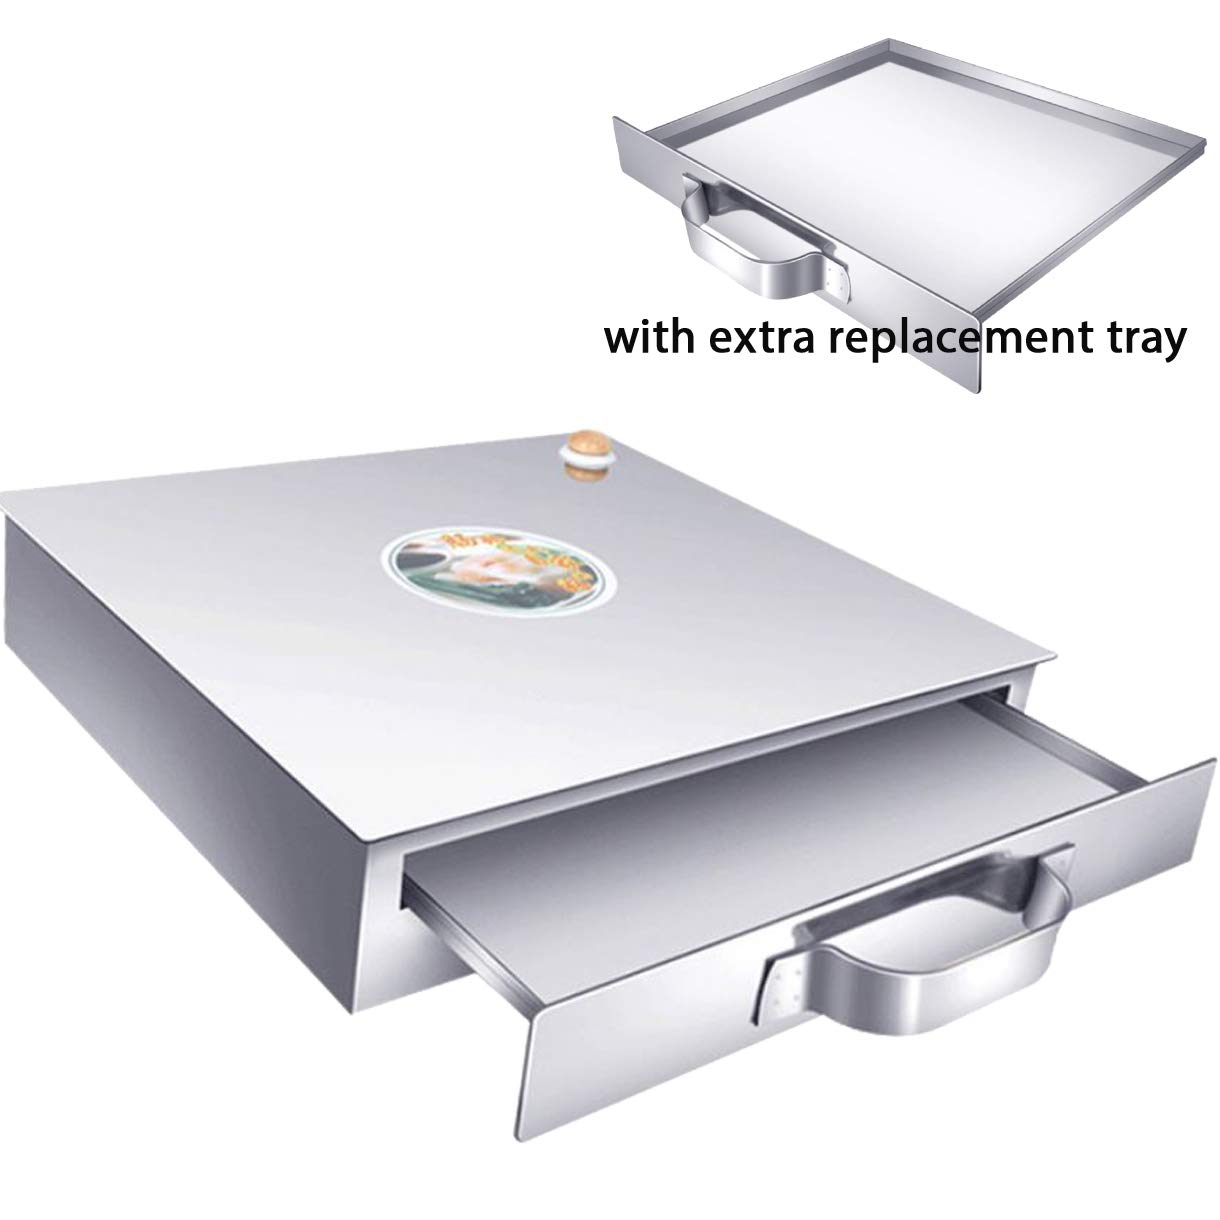 Chinese Rice Noodle Roll Food Steamer with Extra Tray 430 Stainless Steel Square Tier/Layer Cooking Cuisine Guangdong Recipes Cookware (1-Tier)